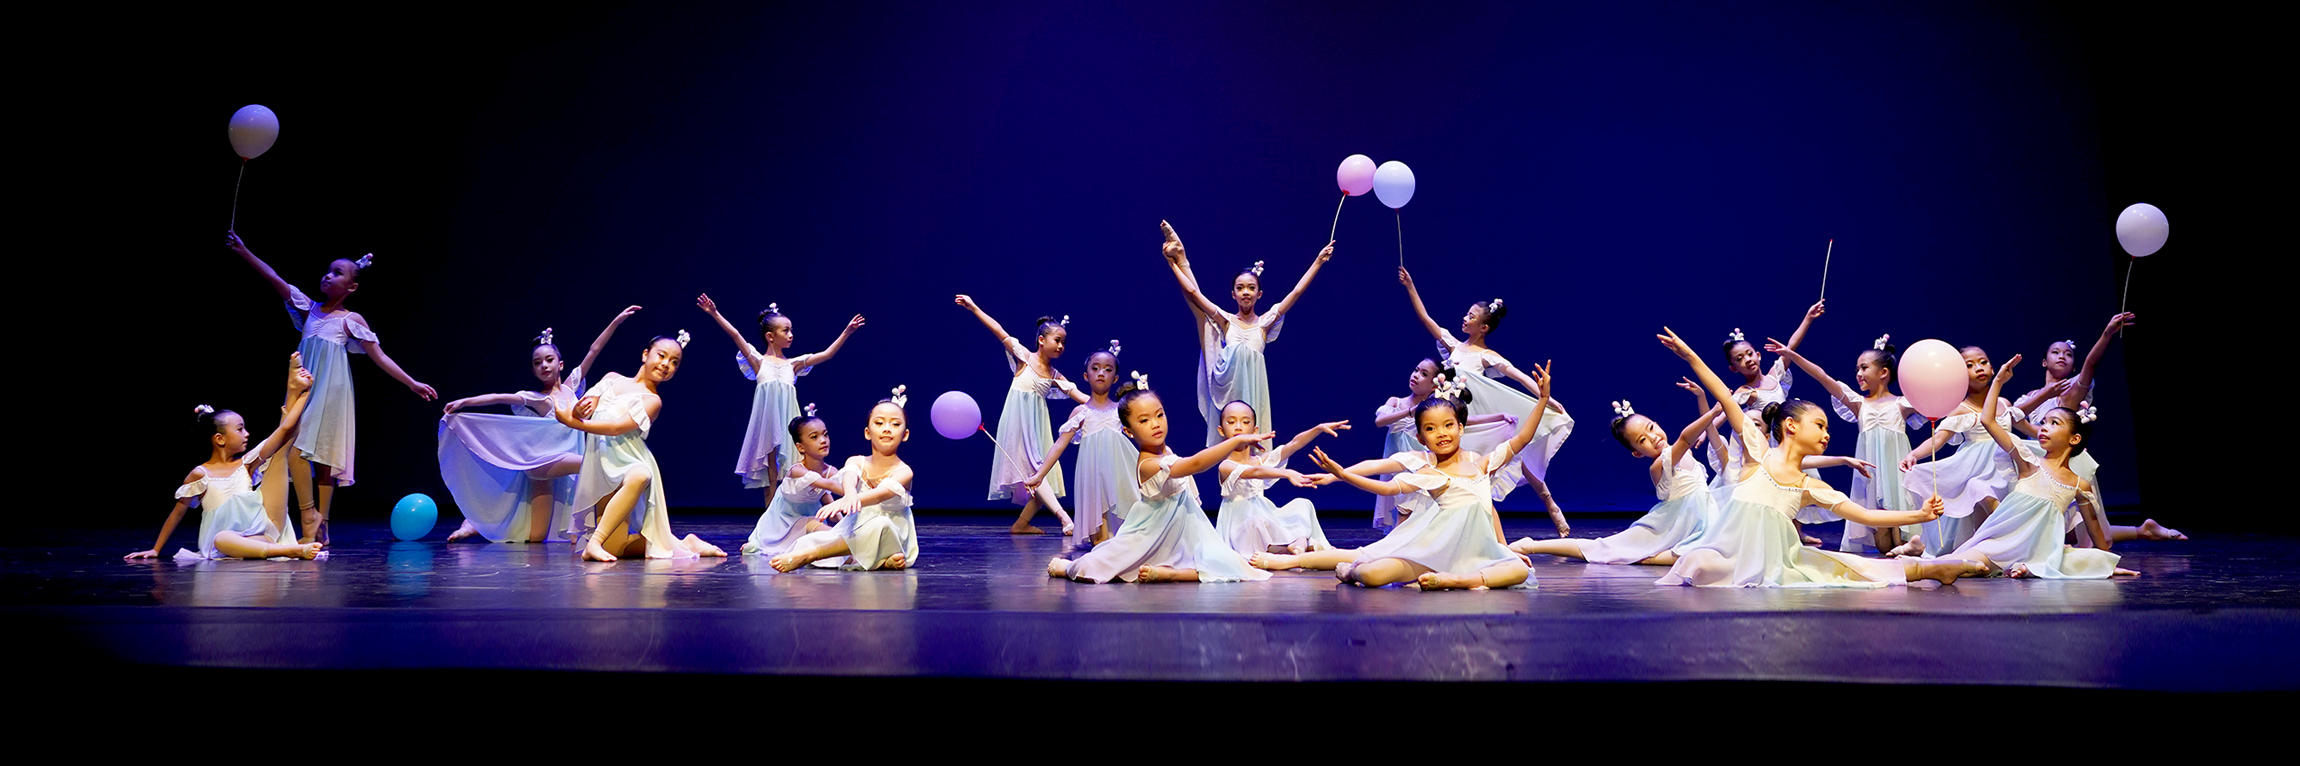 Learn Adult ballet in Singapore